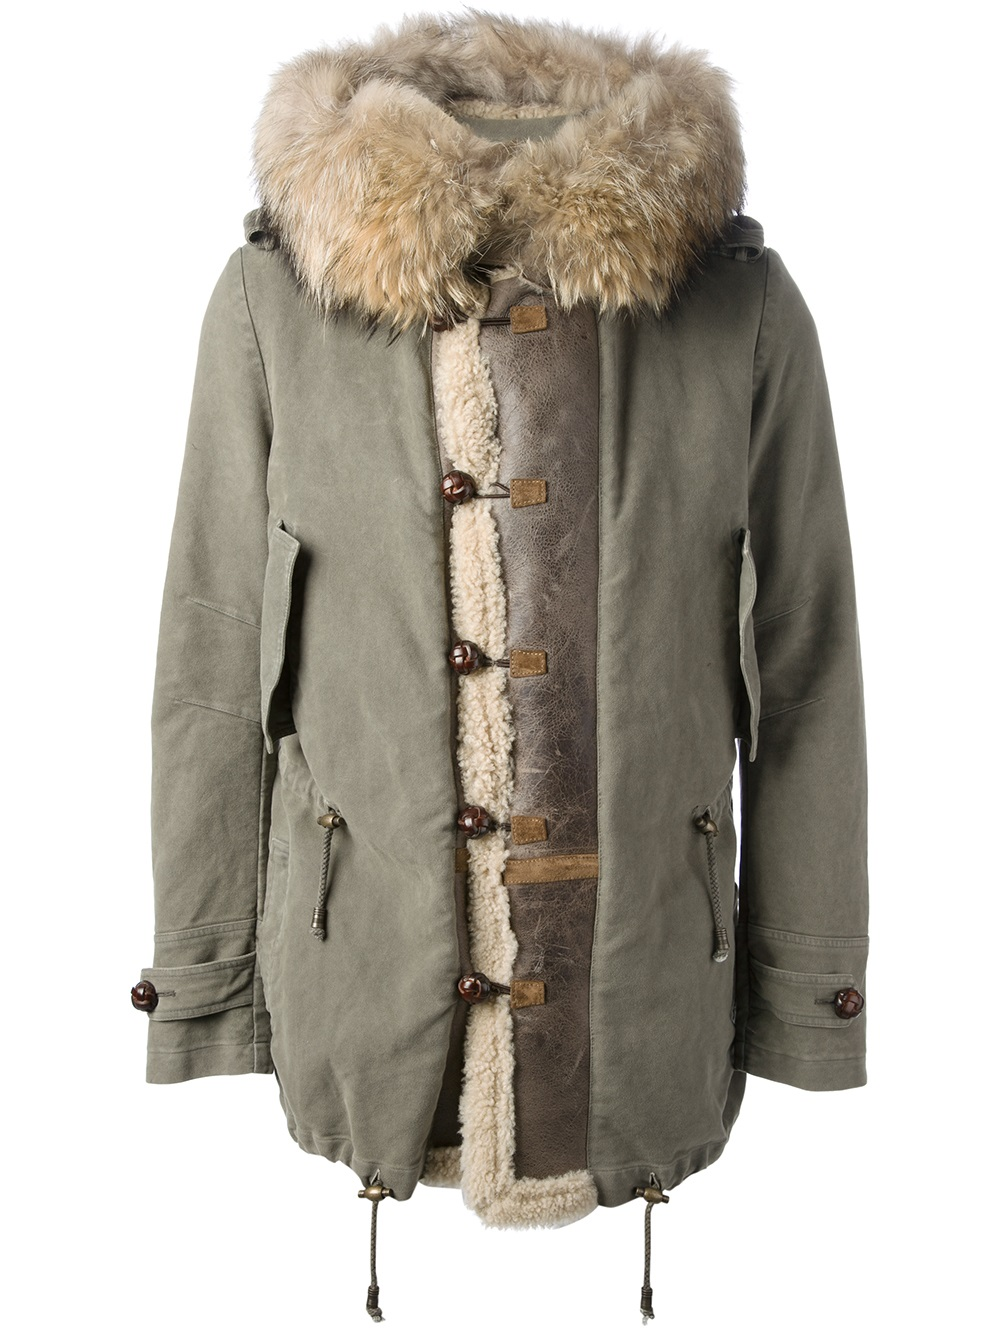 The Ermanno Scervino Army Green Fur Hooded jacket appears to be sold out,  but guys can get the look with these options: Foce Shearling Lined Parka: